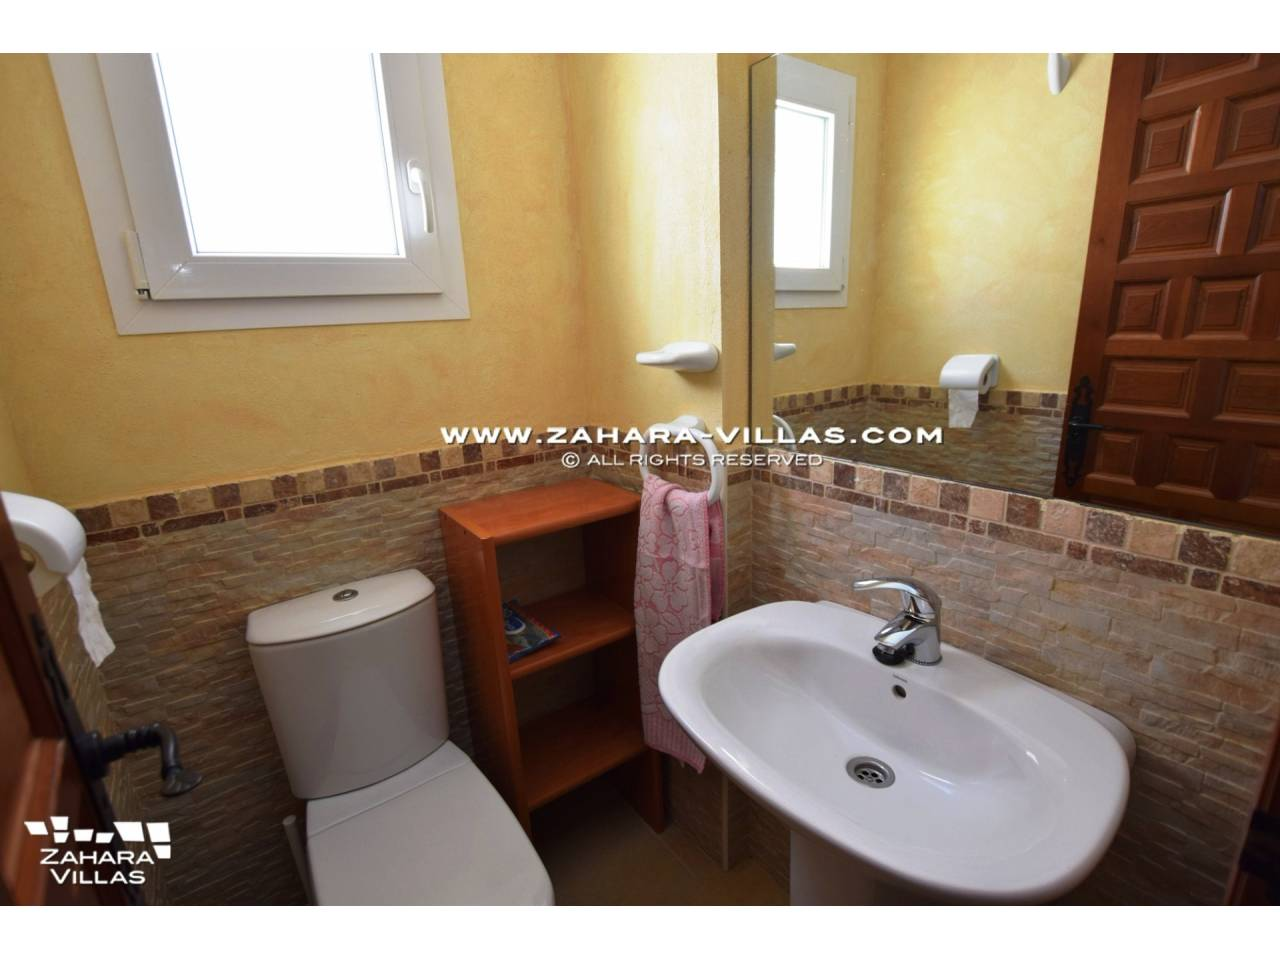 Imagen 12 de Semi-detached house for sale en Zahara de los Atunes